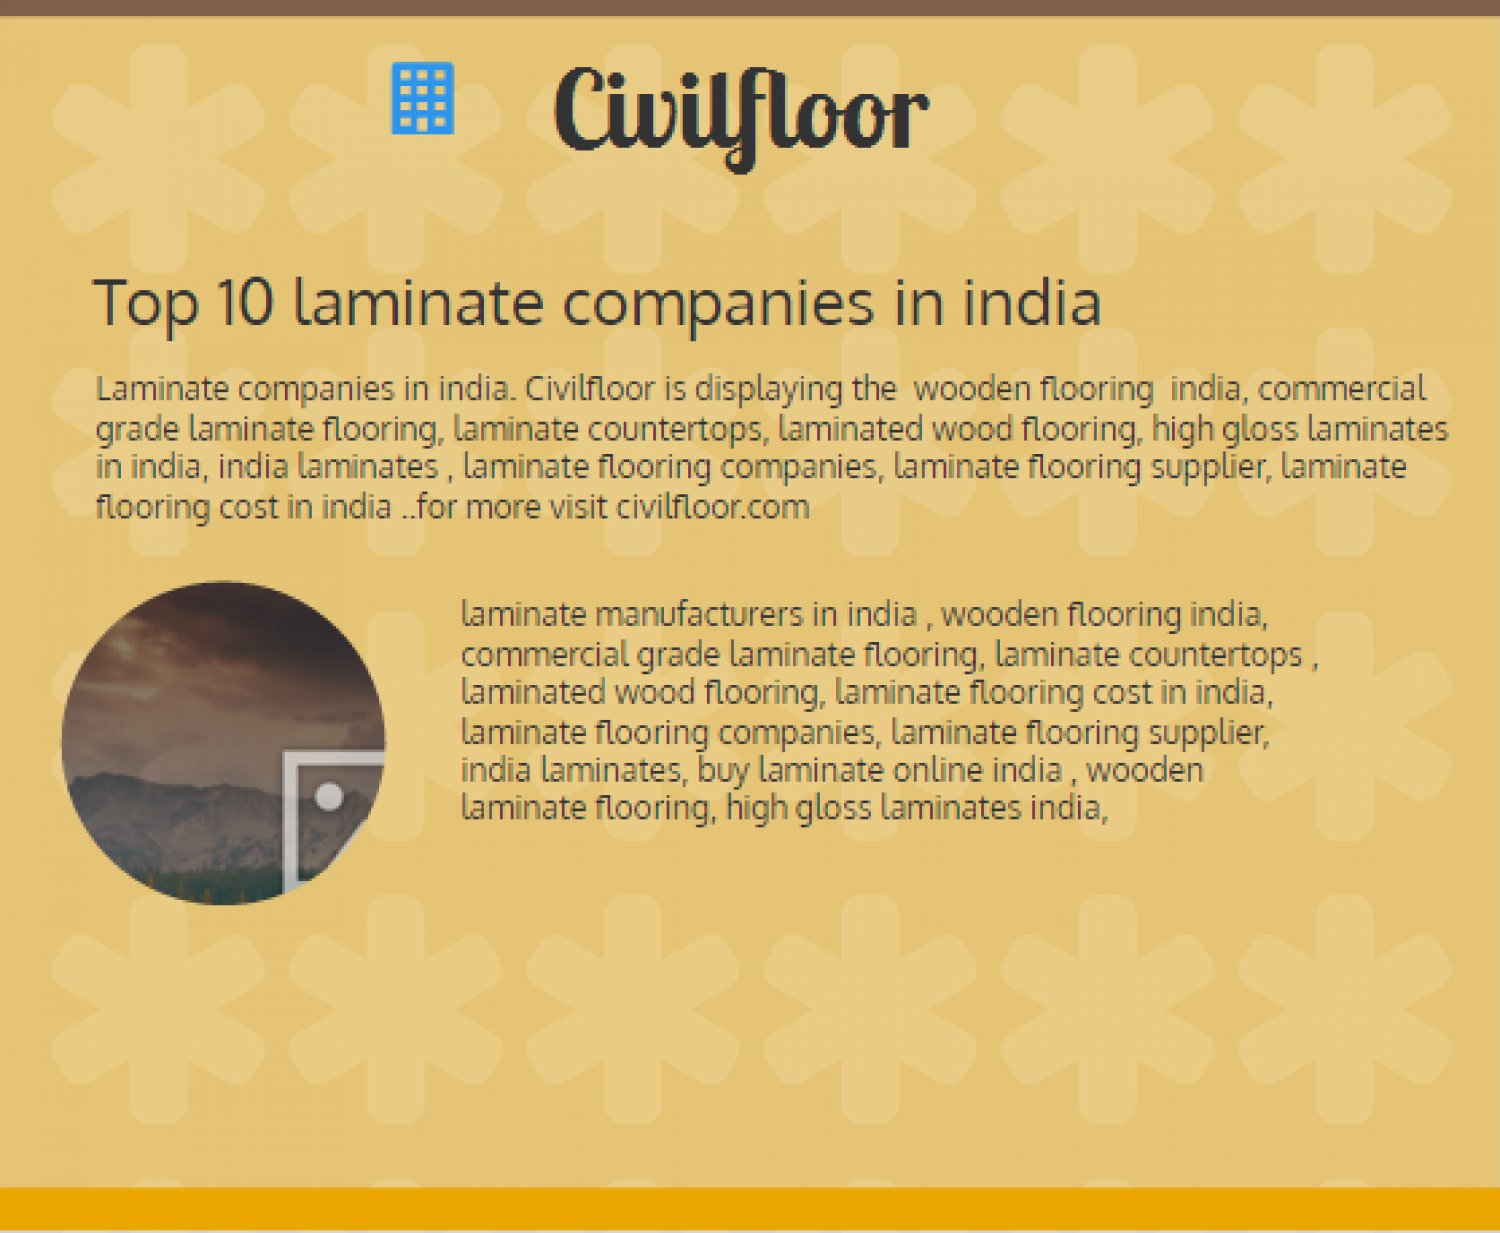 Top 10 laminate companies in india Visually